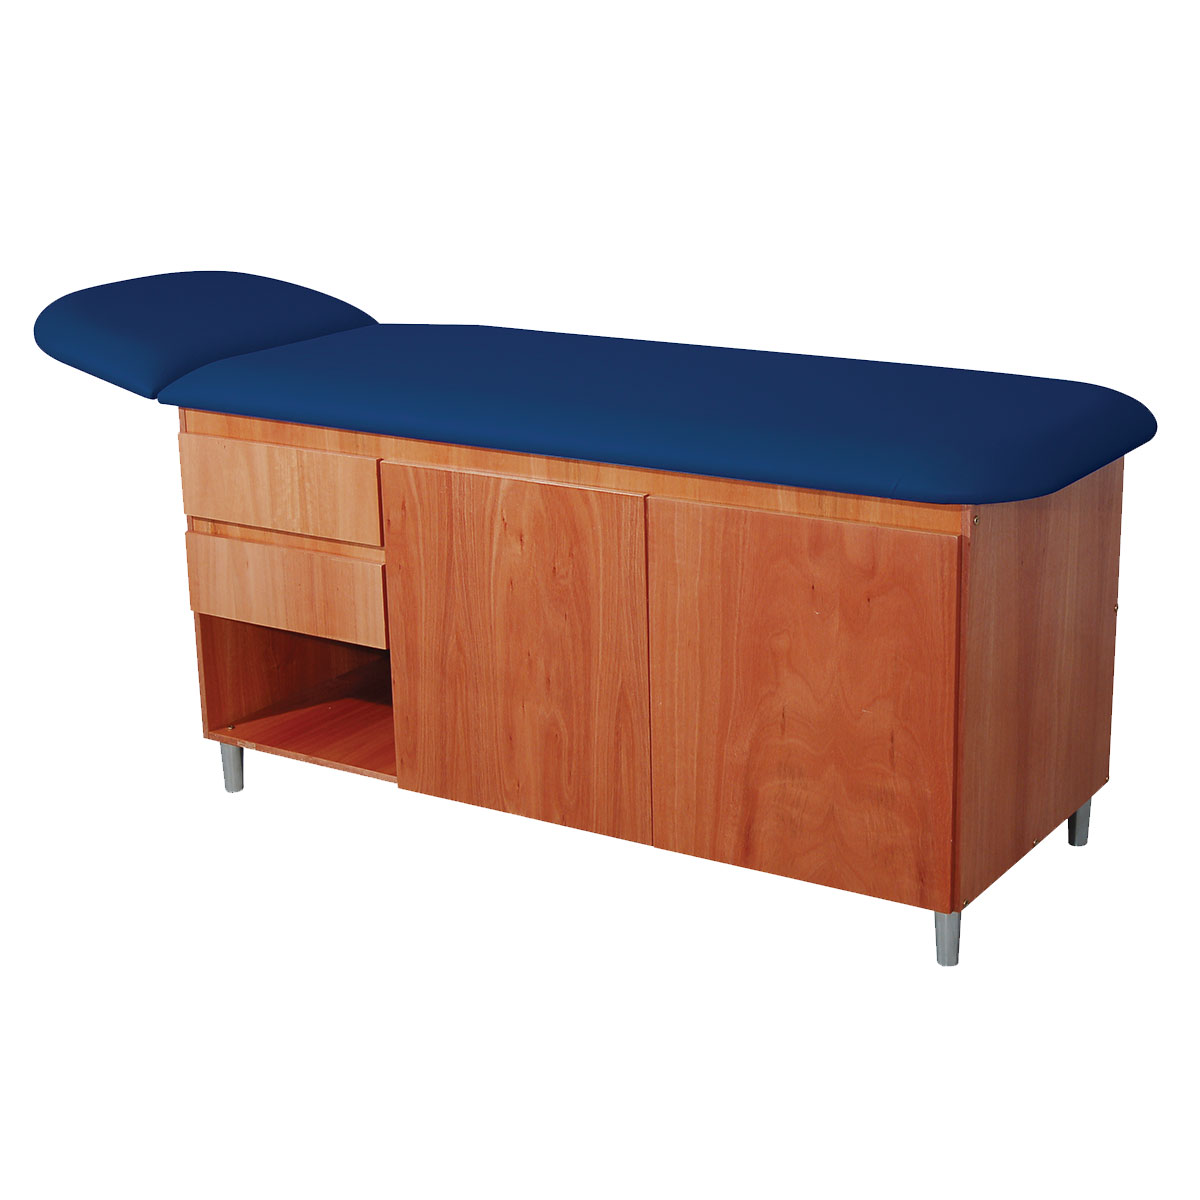 Treatment table classic straight line table with drawers for Html table lines